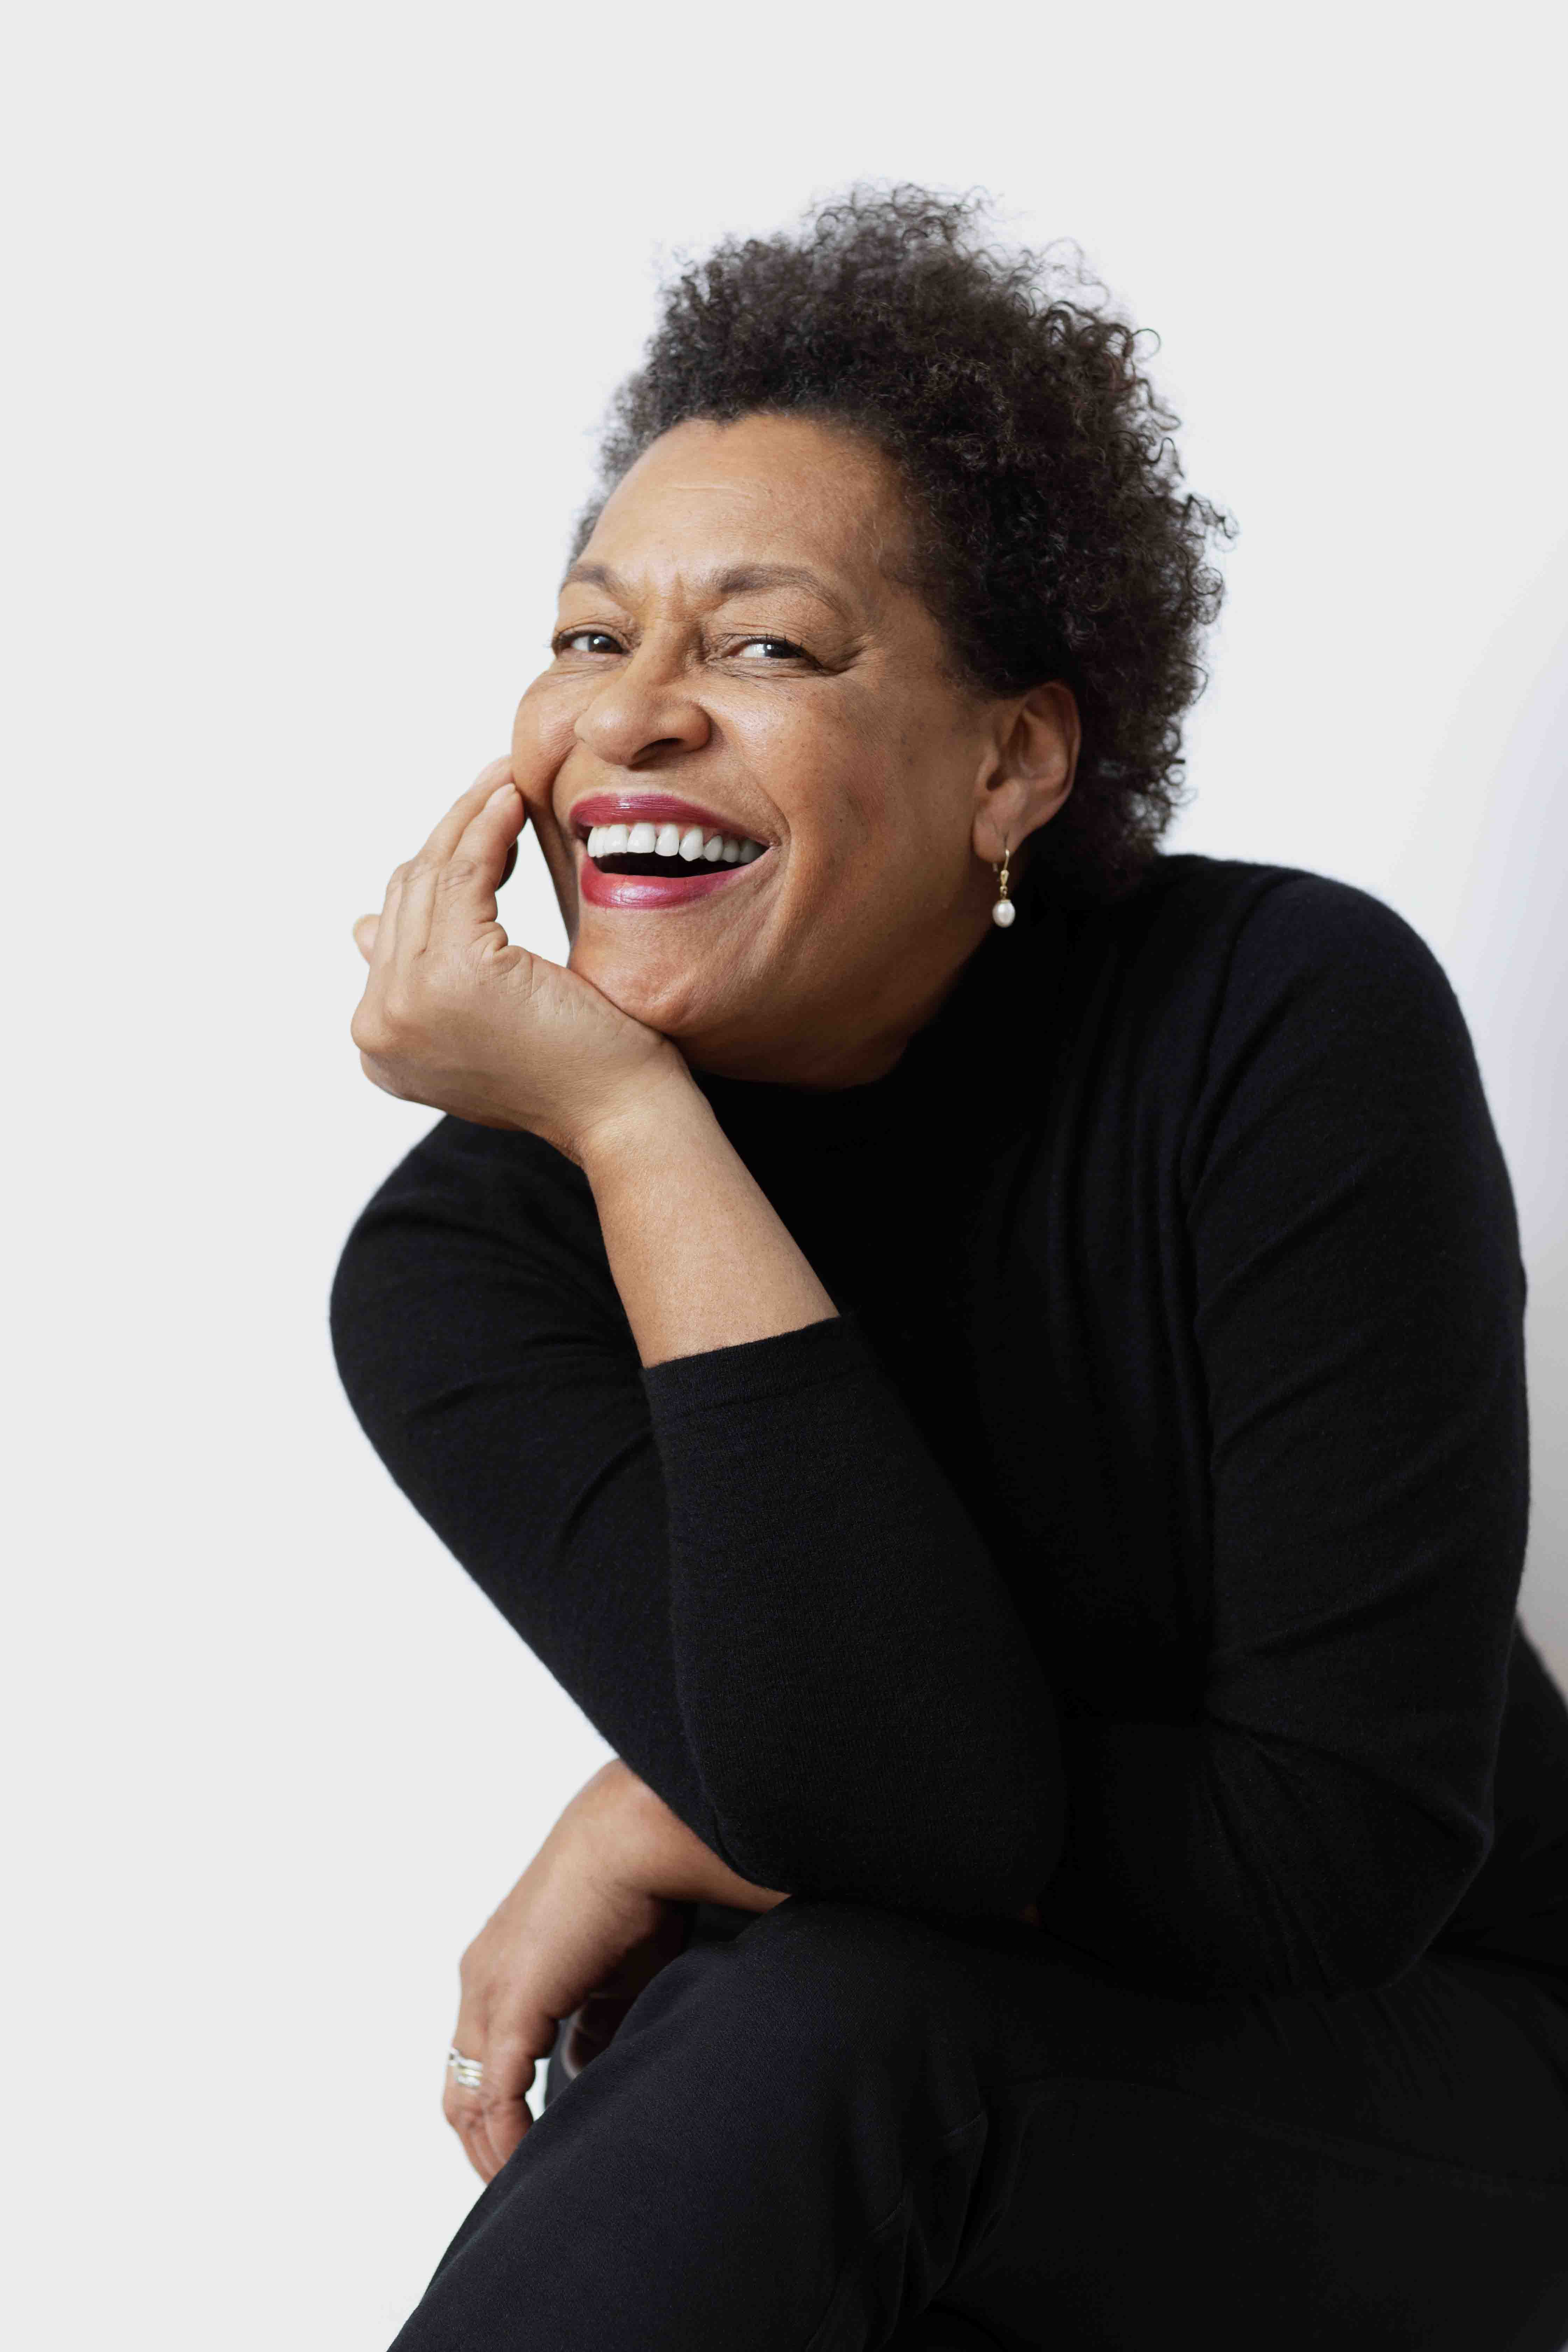 Visual arts mentor Carrie Mae Weems